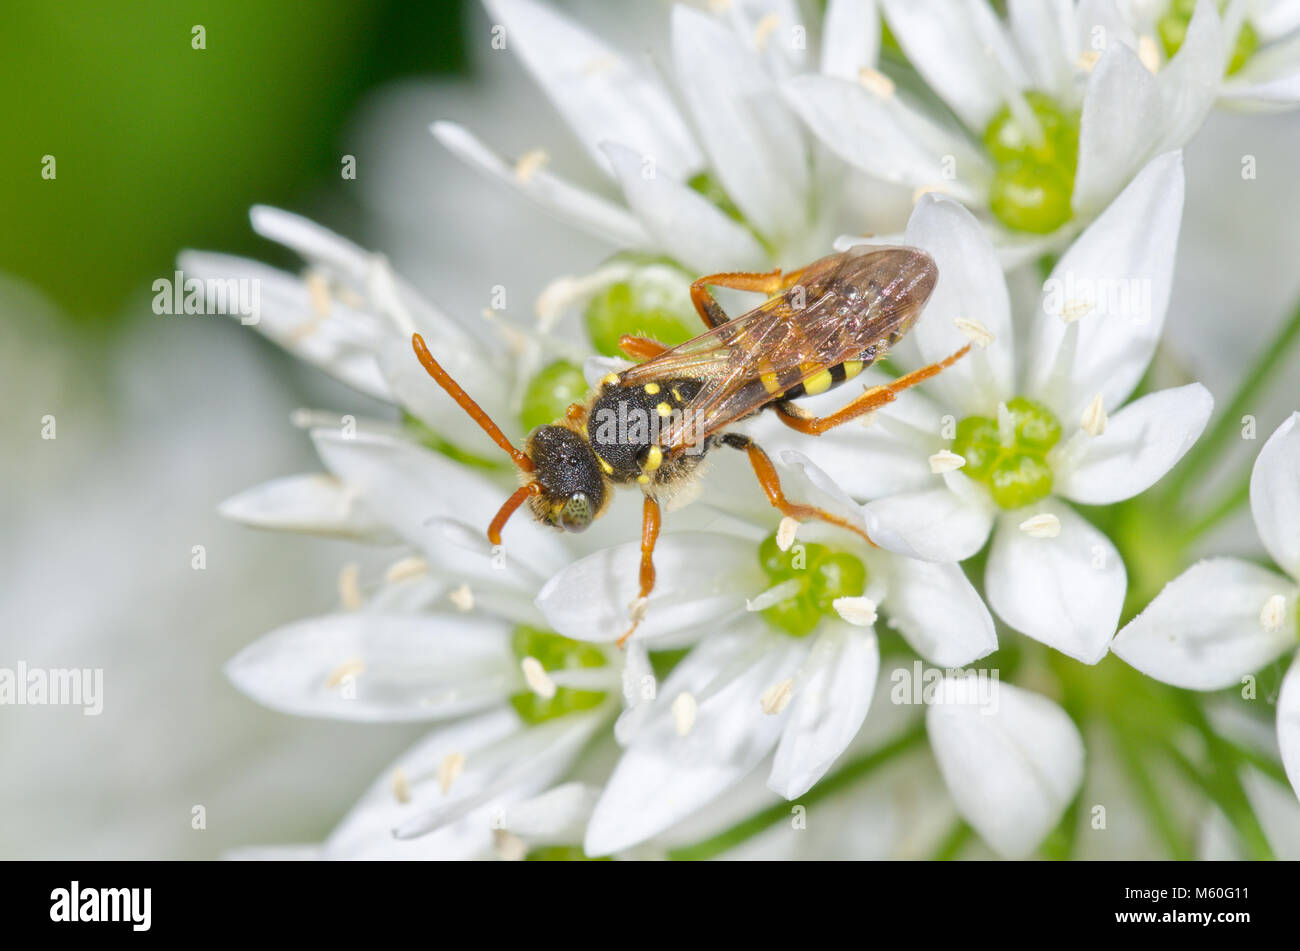 Goodens Nomad Cuckoo Bee (Nomada goodeniana) foraging on Wild Garlic in Sussex, UK - Stock Image